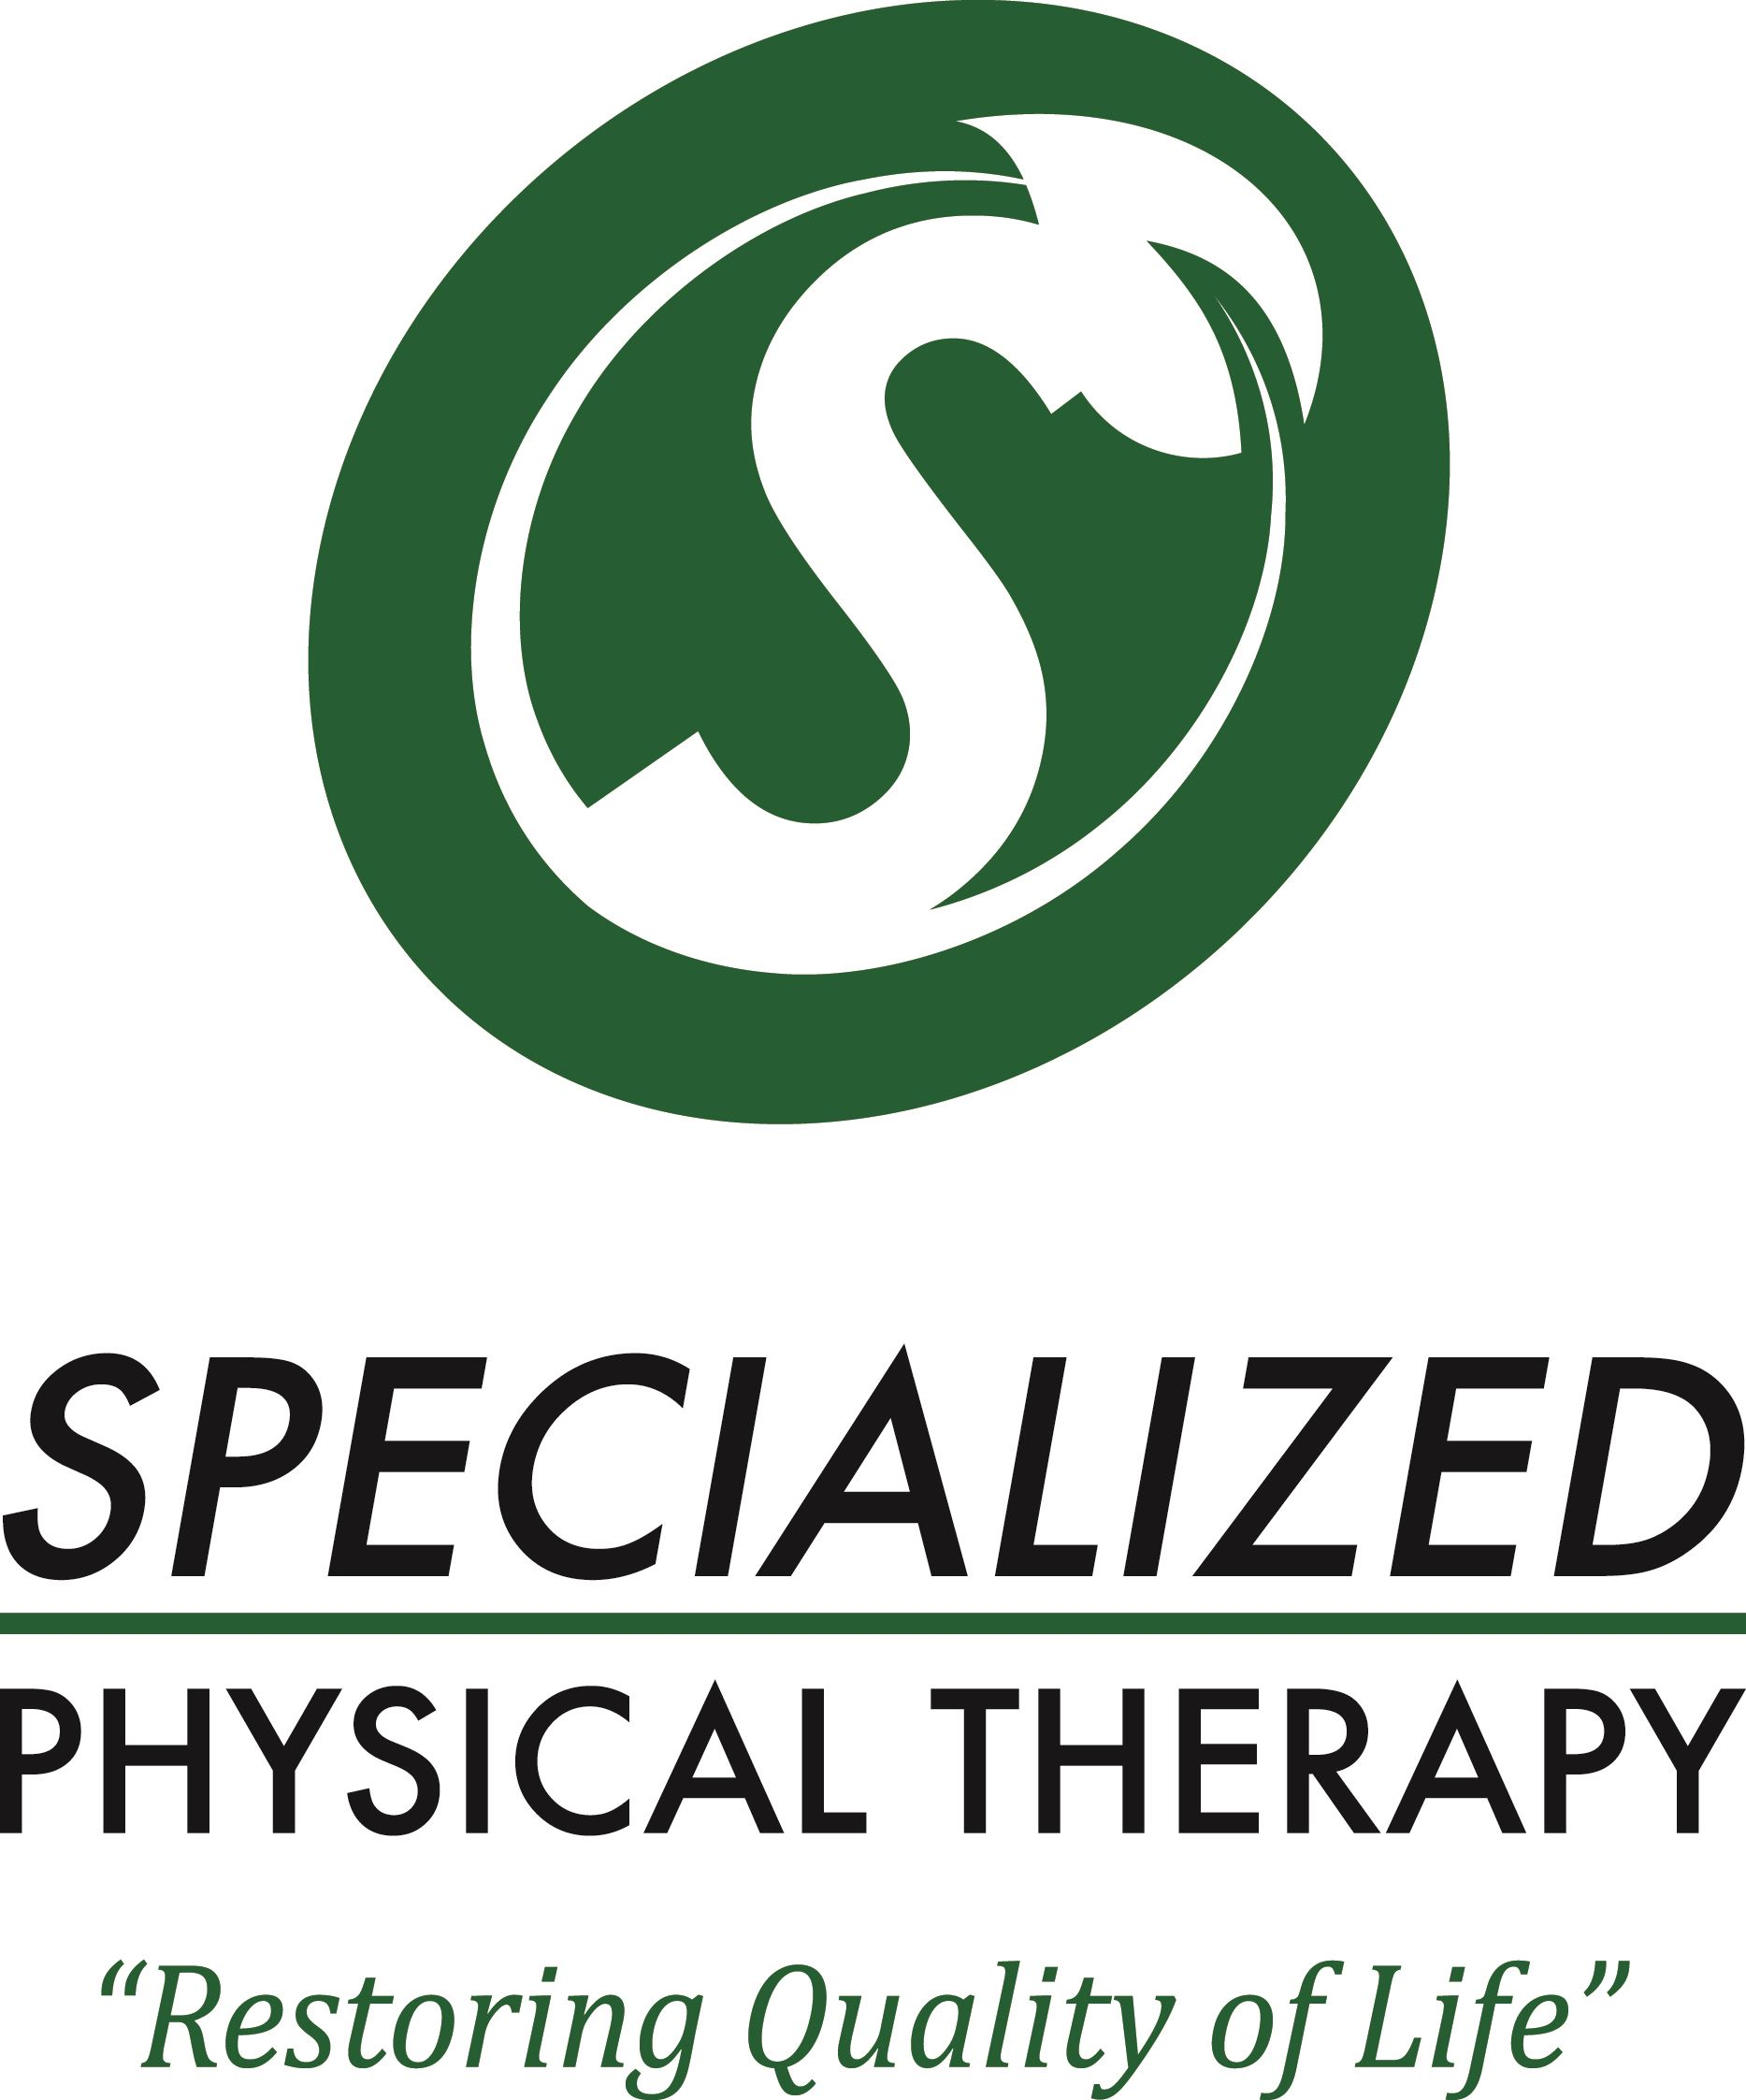 Specialized Physical Therapy logo